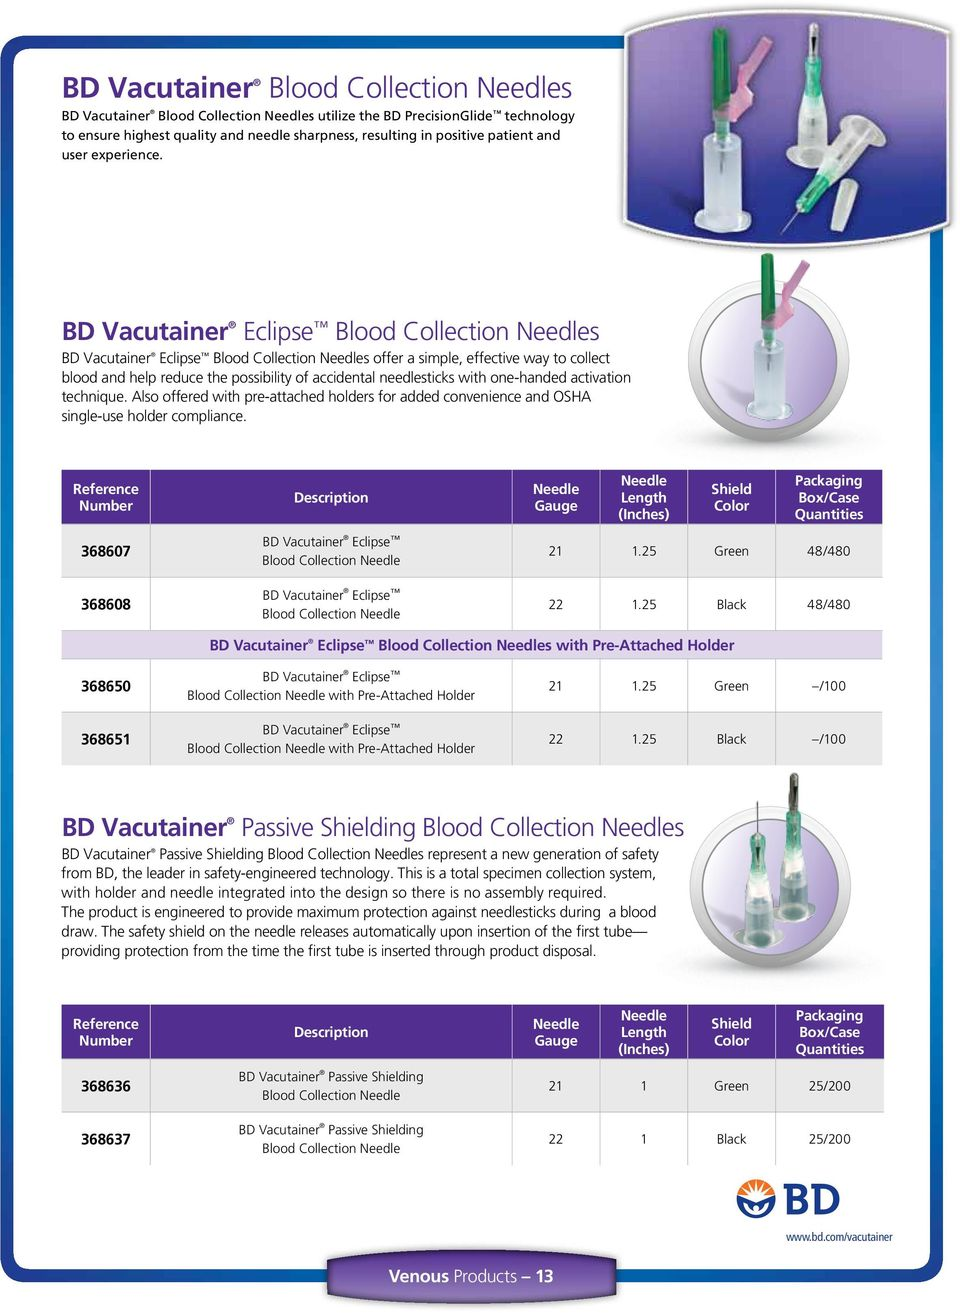 BD Vacutainer Eclipse Blood Collection Needles BD Vacutainer Eclipse Blood Collection Needles offer a simple, effective way to collect blood and help reduce the possibility of accidental needlesticks